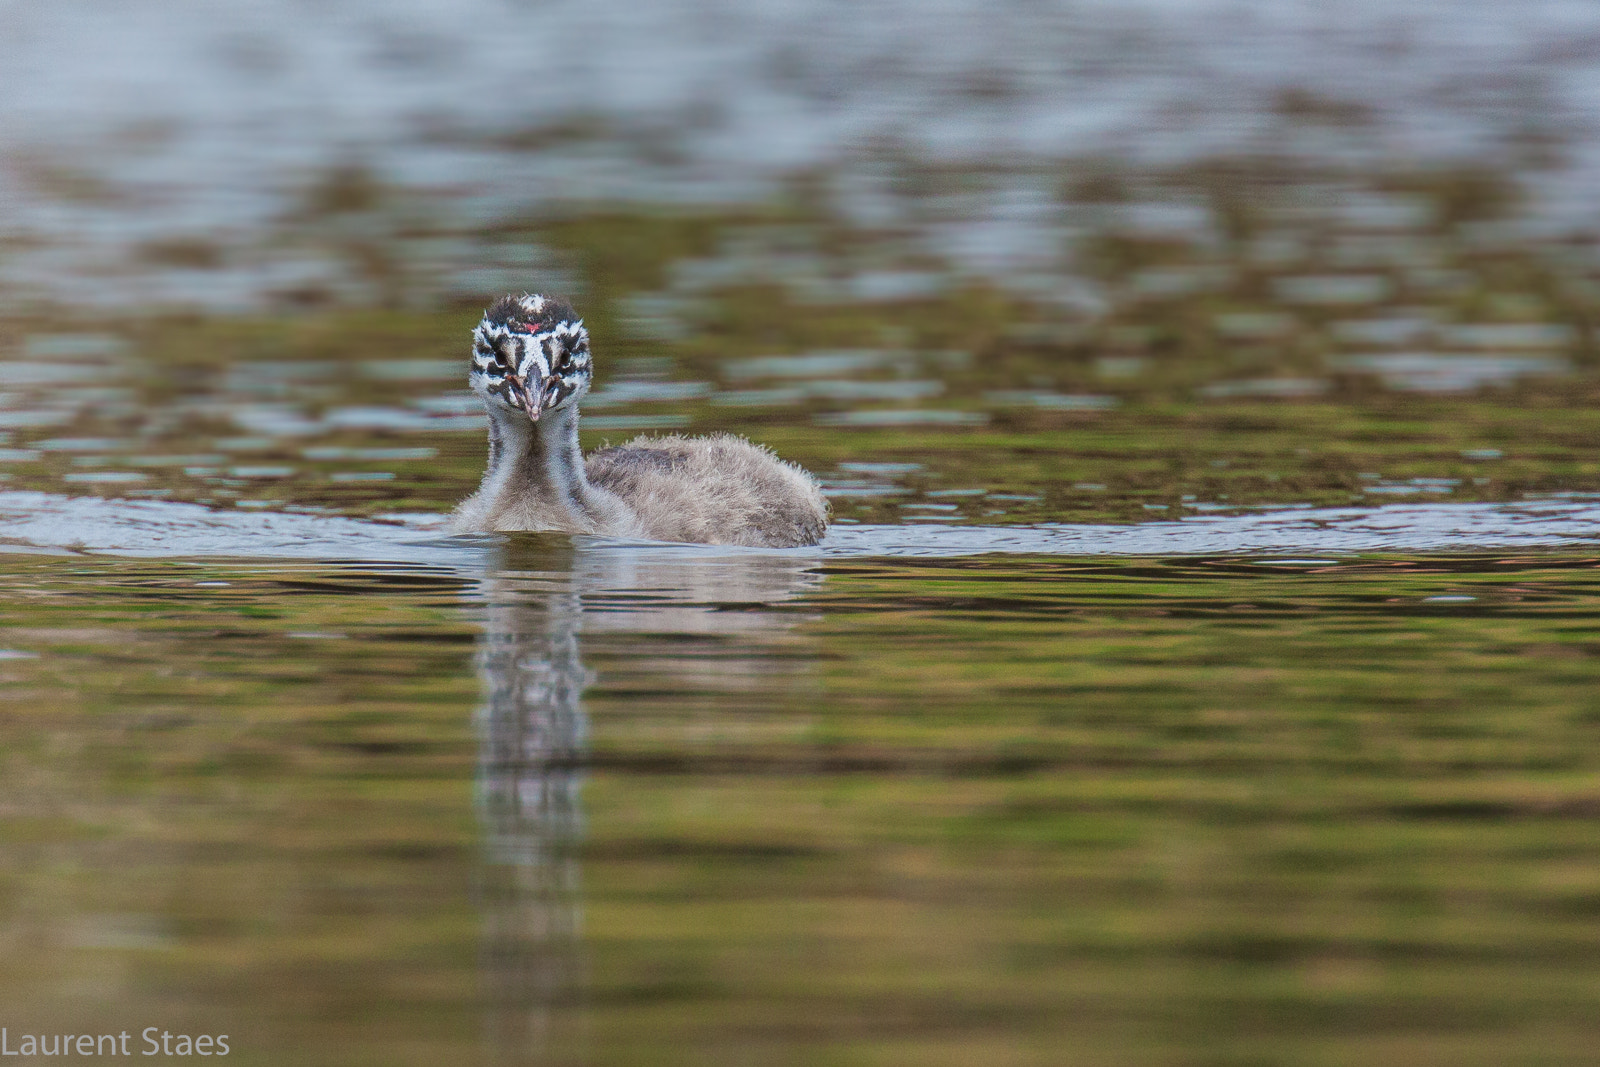 Photograph Juvenile Great Crested Grebe by Laurent Staes on 500px